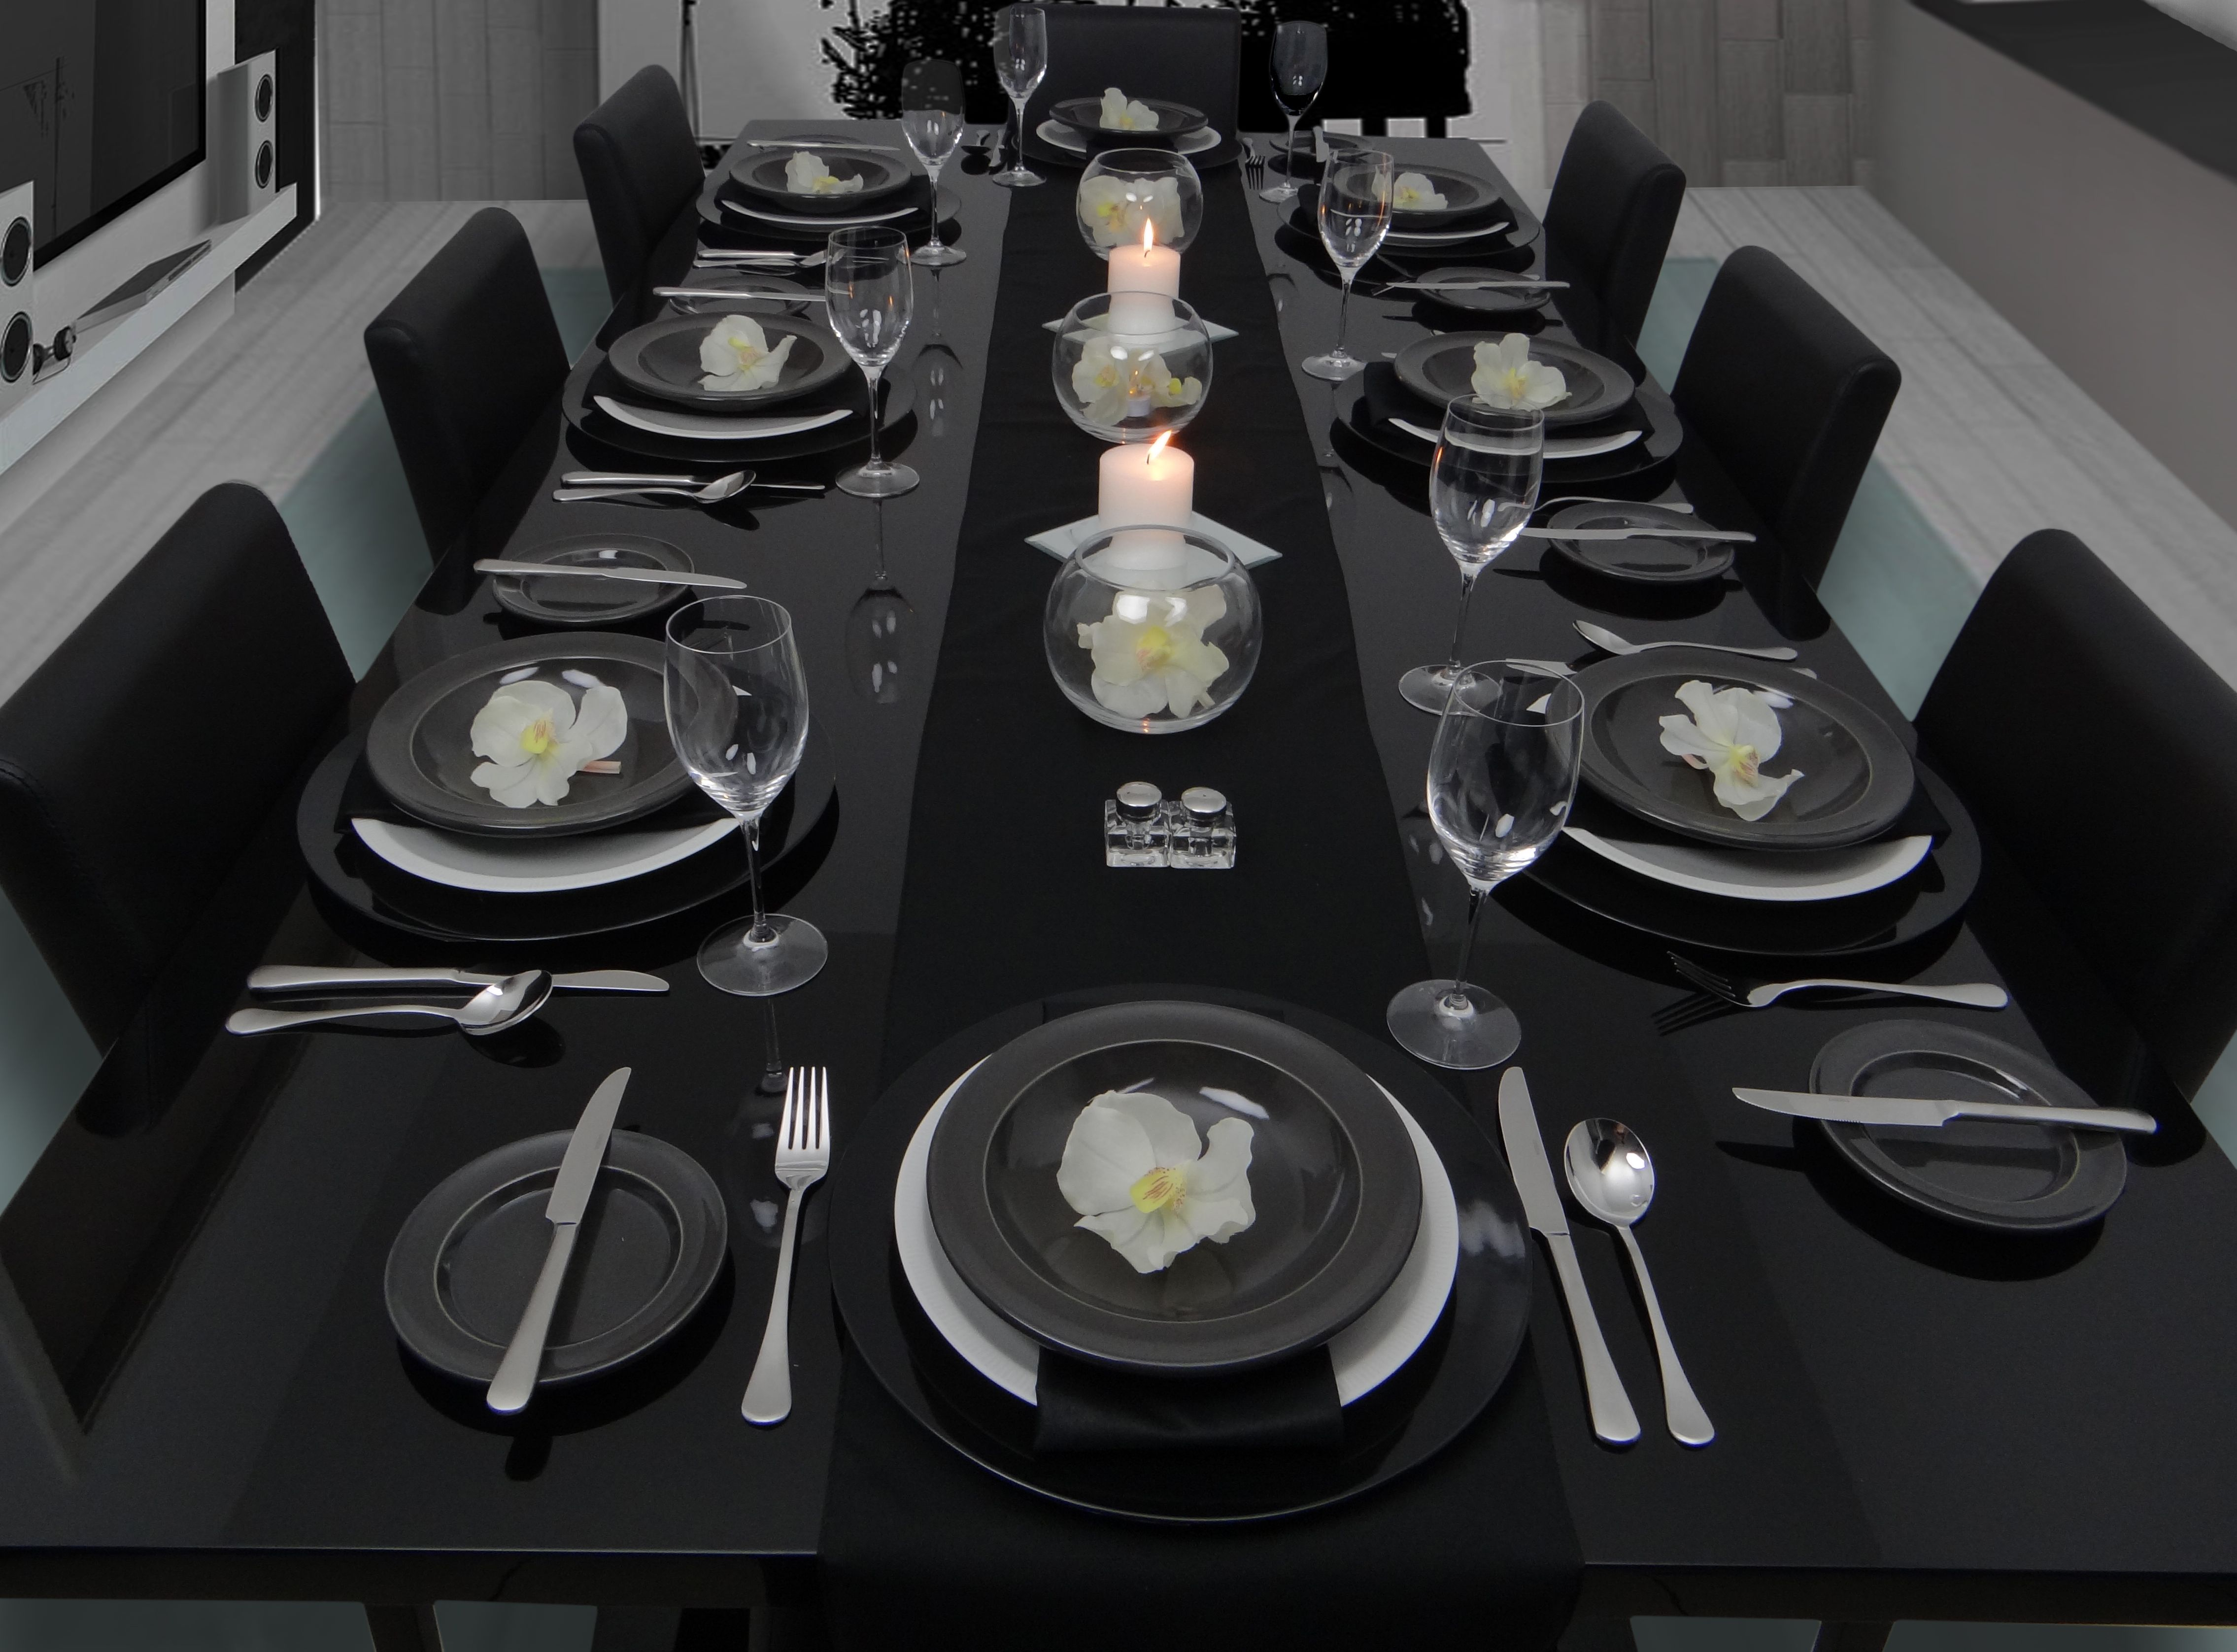 vanda orchids bring class and elegance to this table setting